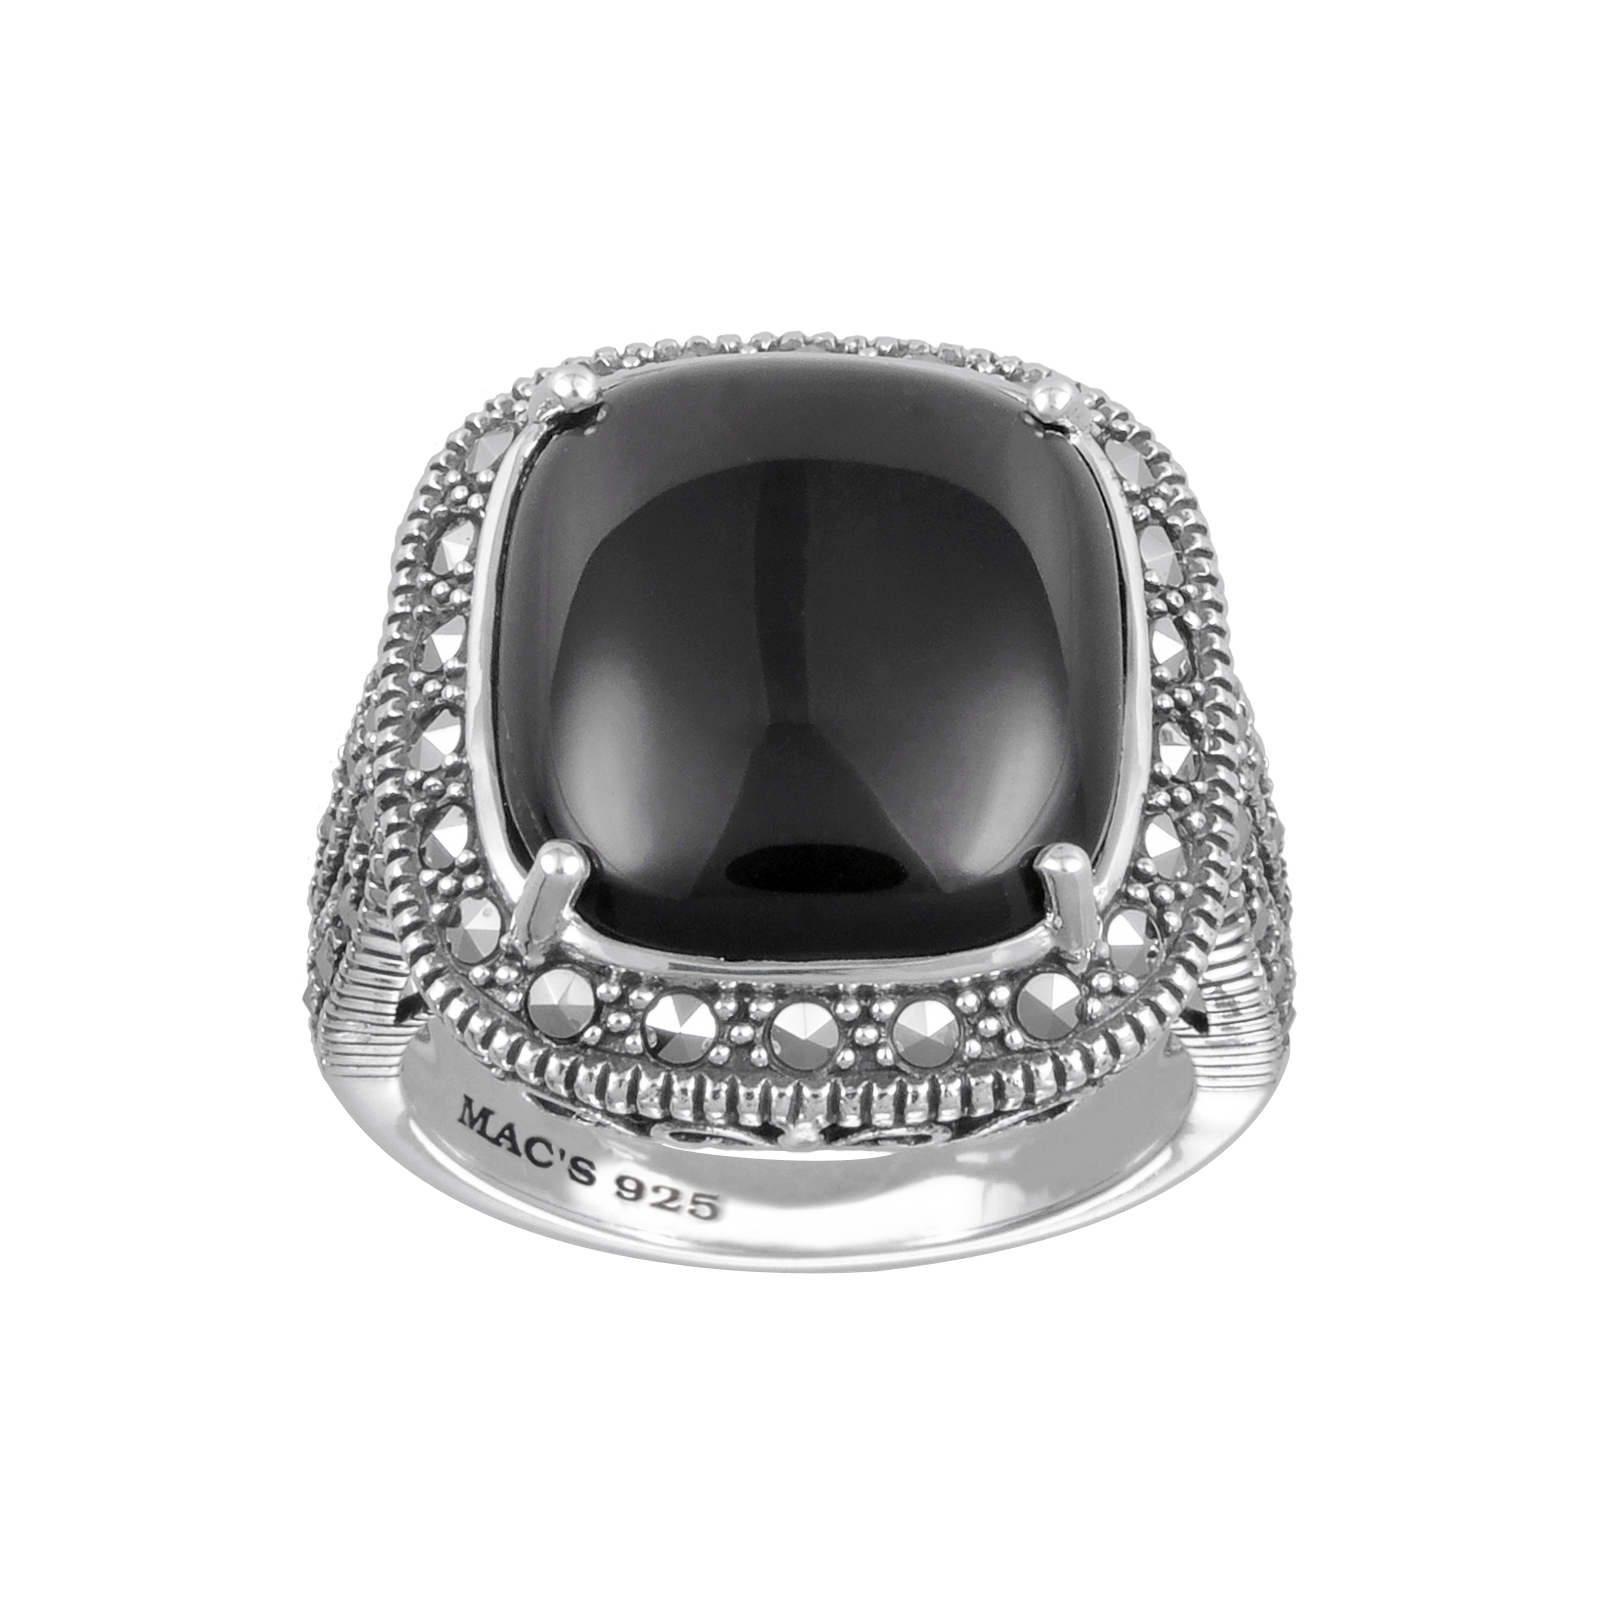 Mac's Cabochon Square Cut Black Onyx & Marcasite Ring